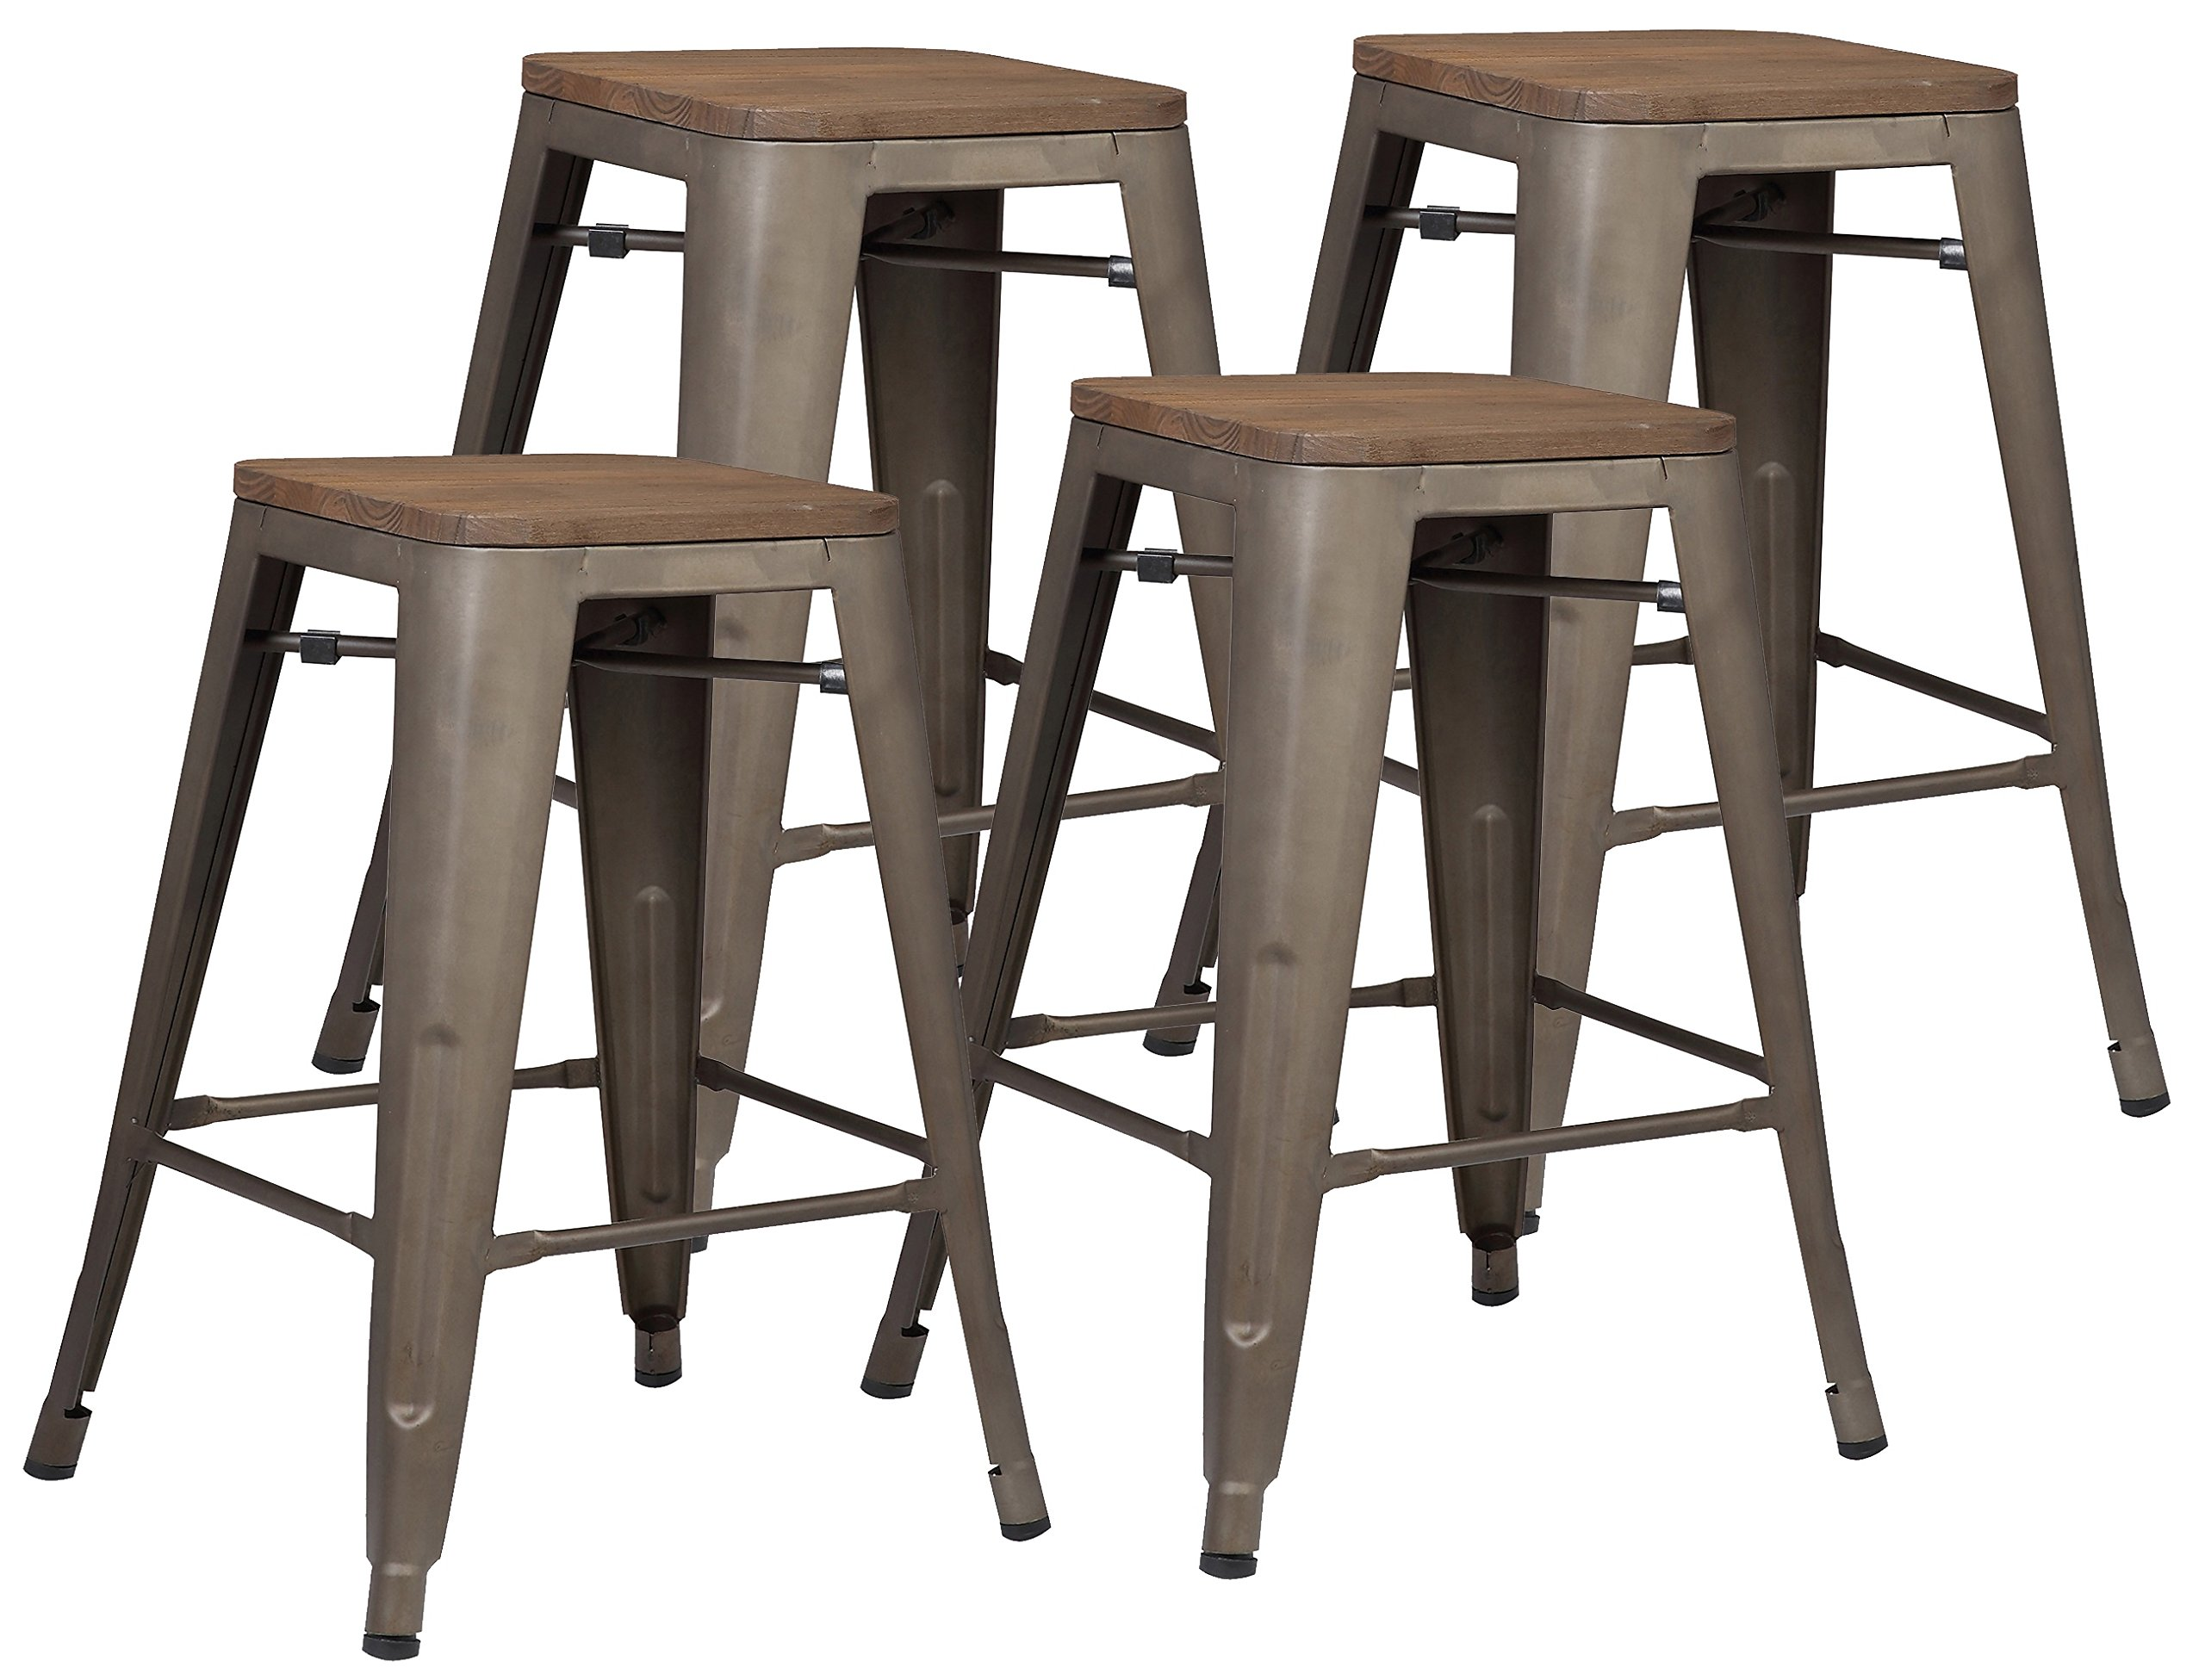 Poly and Bark Trattoria 24'' Counter Height Stool with Elmwood Seat in Bronze (Set of 4)